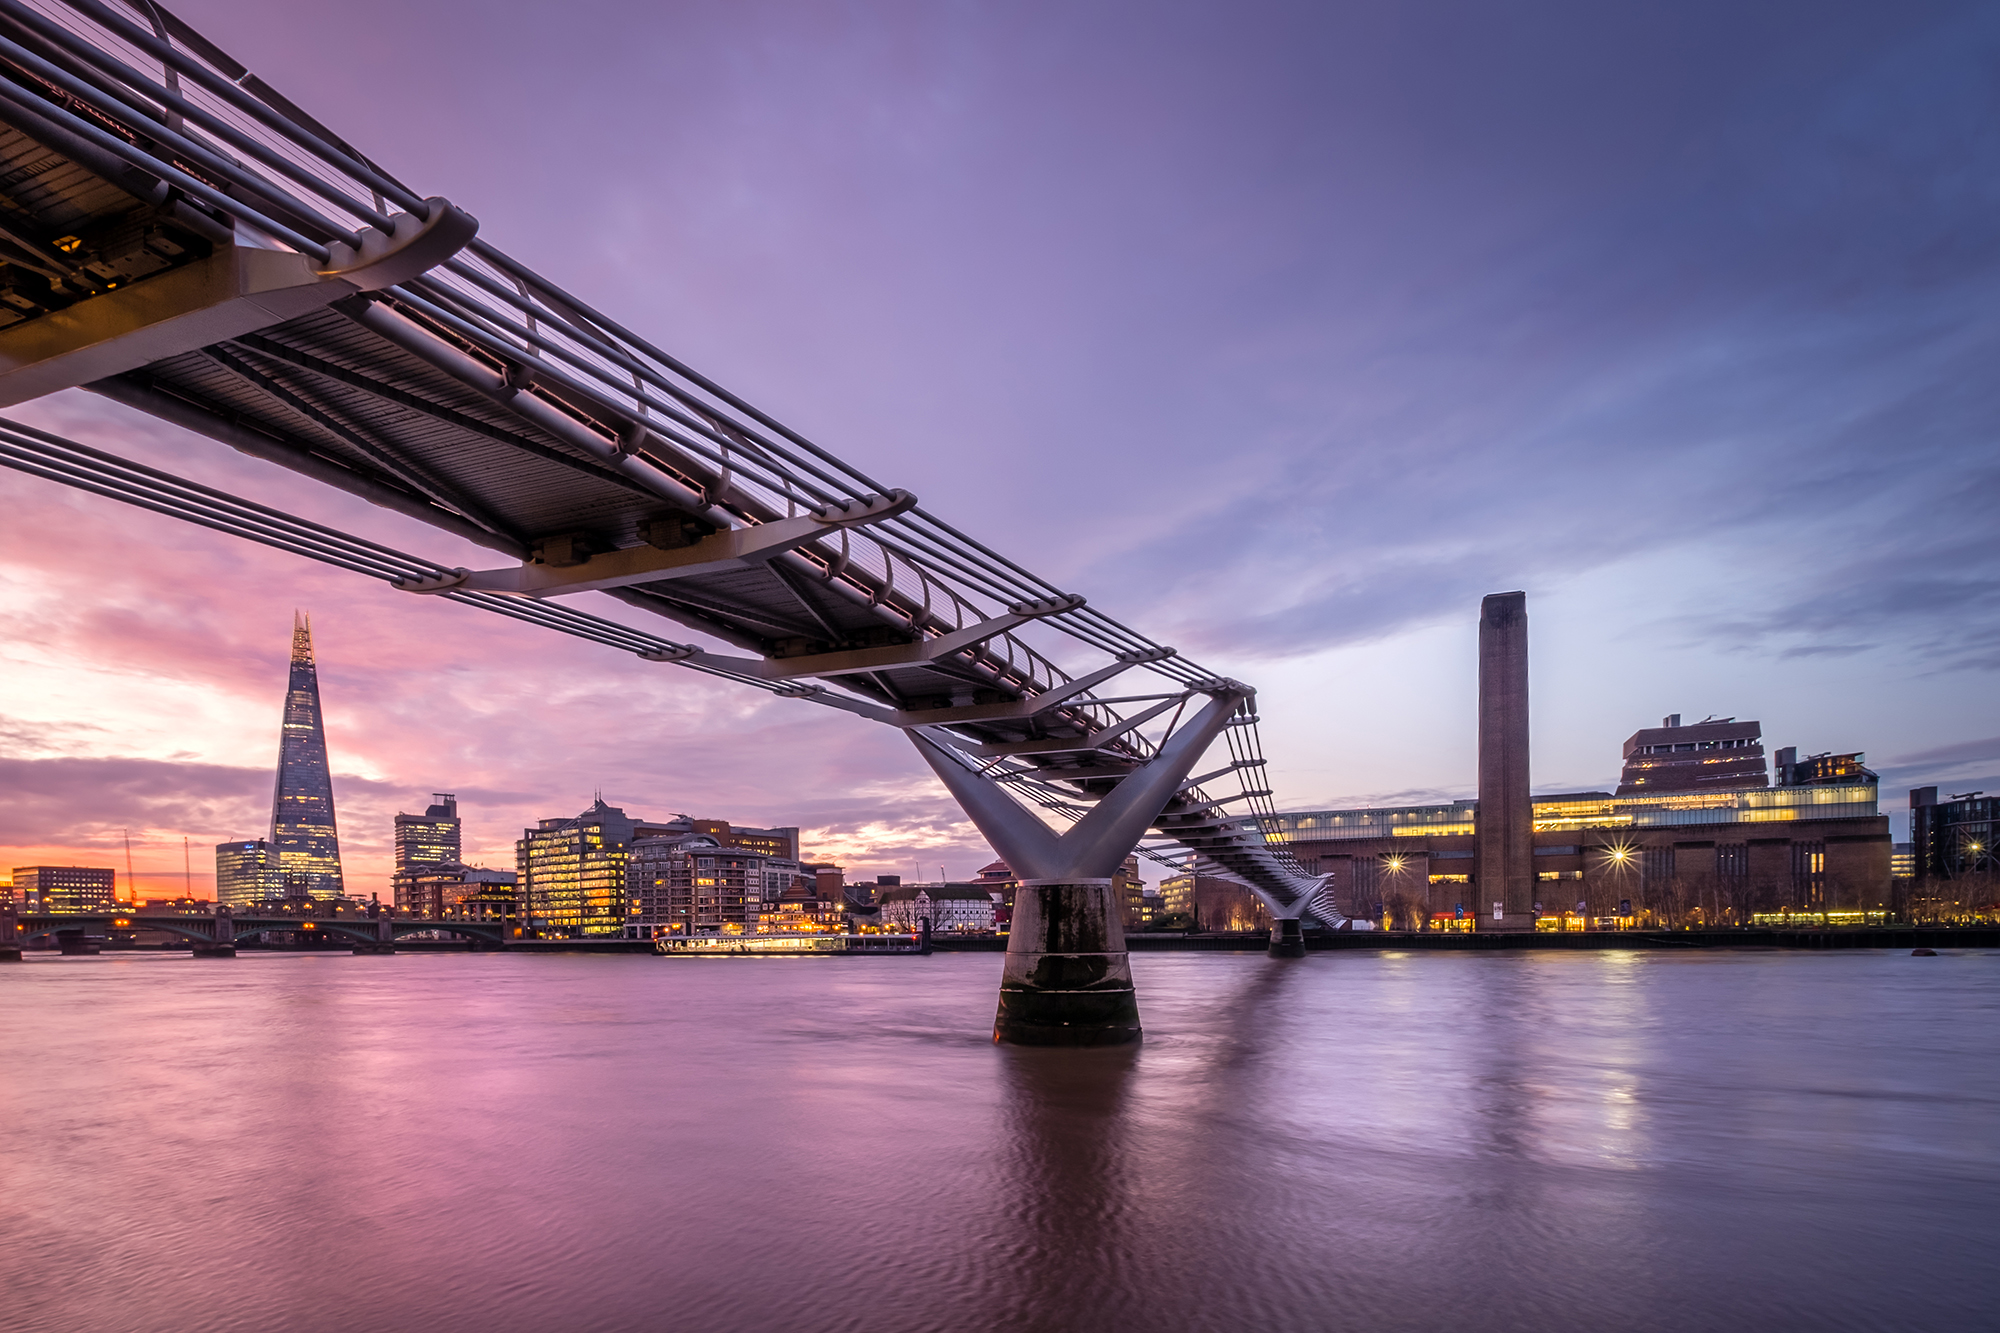 A photo of the Millennium Bridge and Tate Modern in London at sunrise by Trevor Sherwin